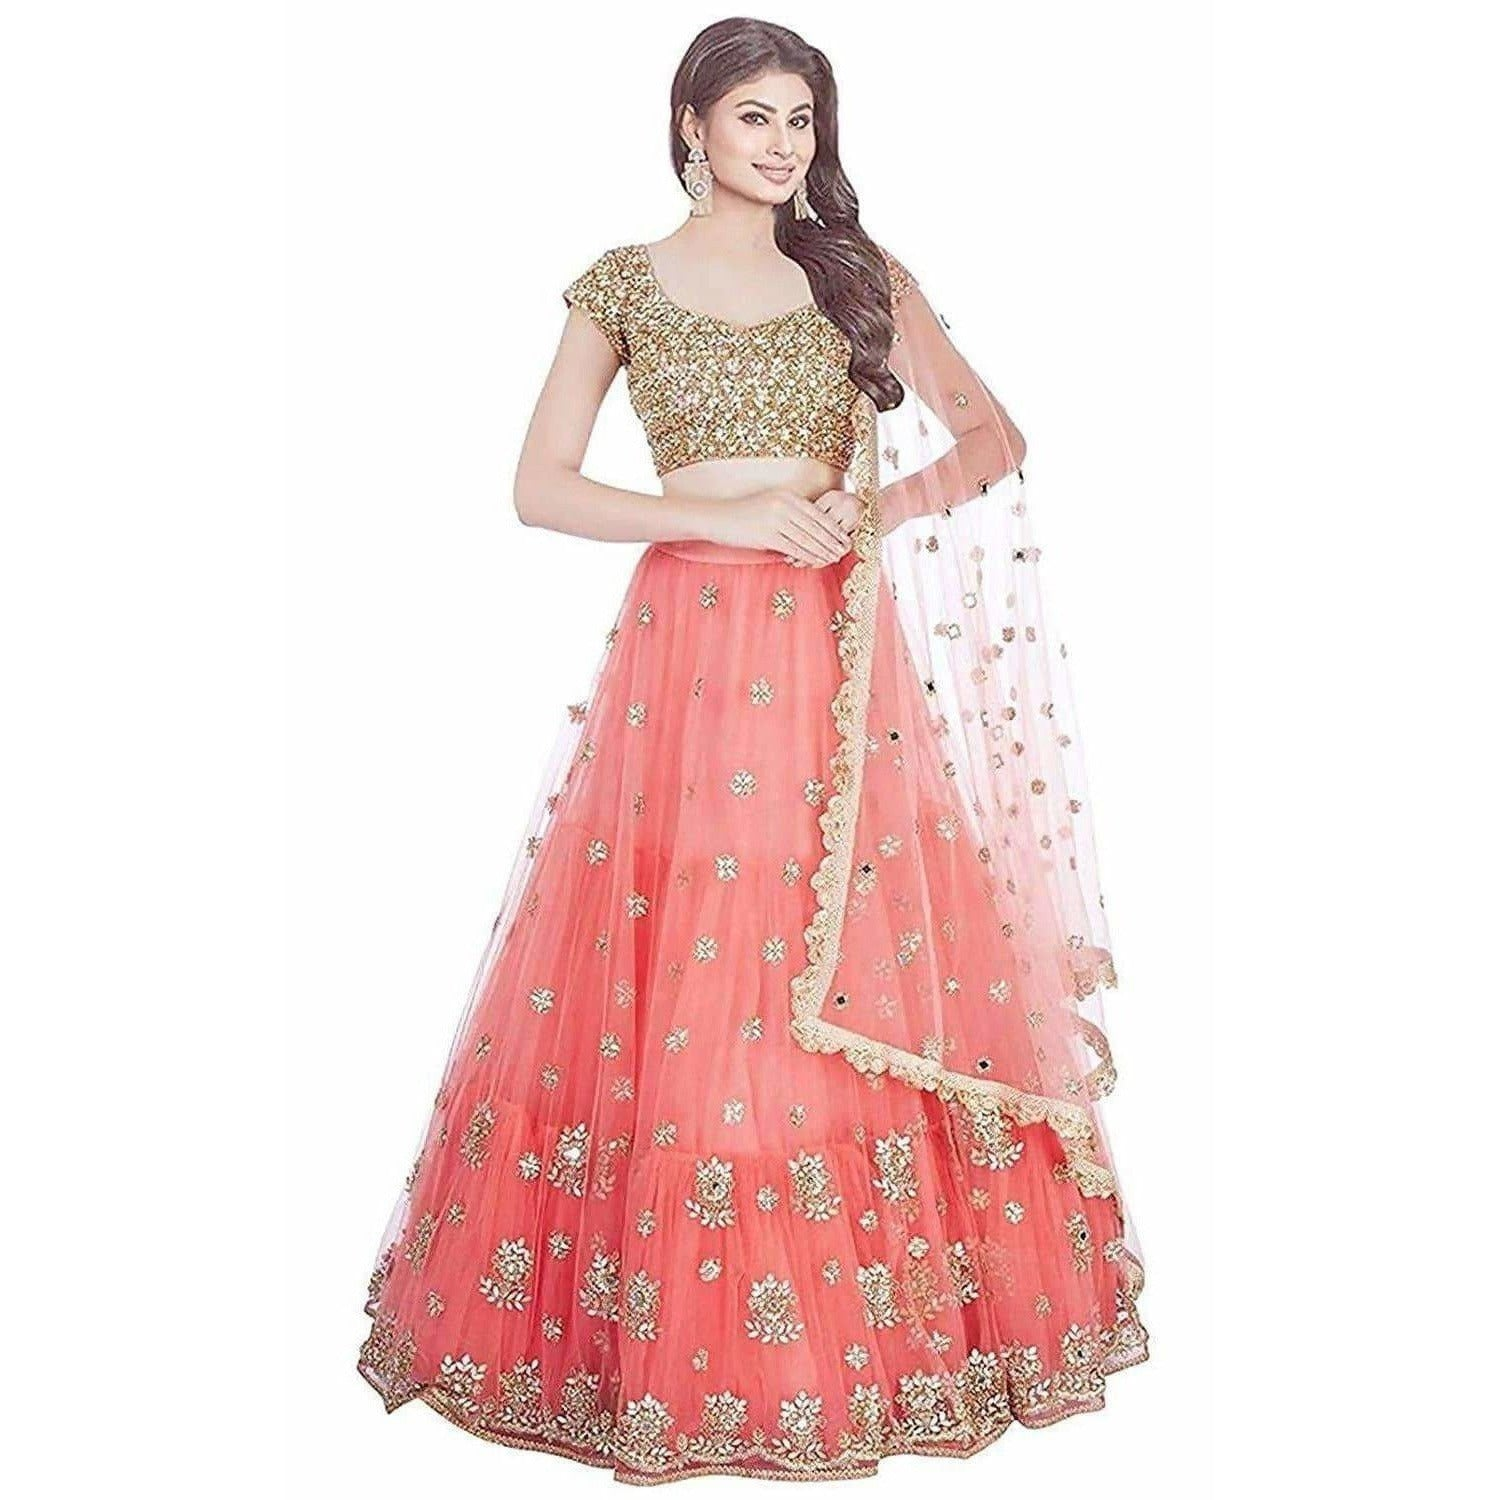 Orange Semi Stitched Lehenga Choli